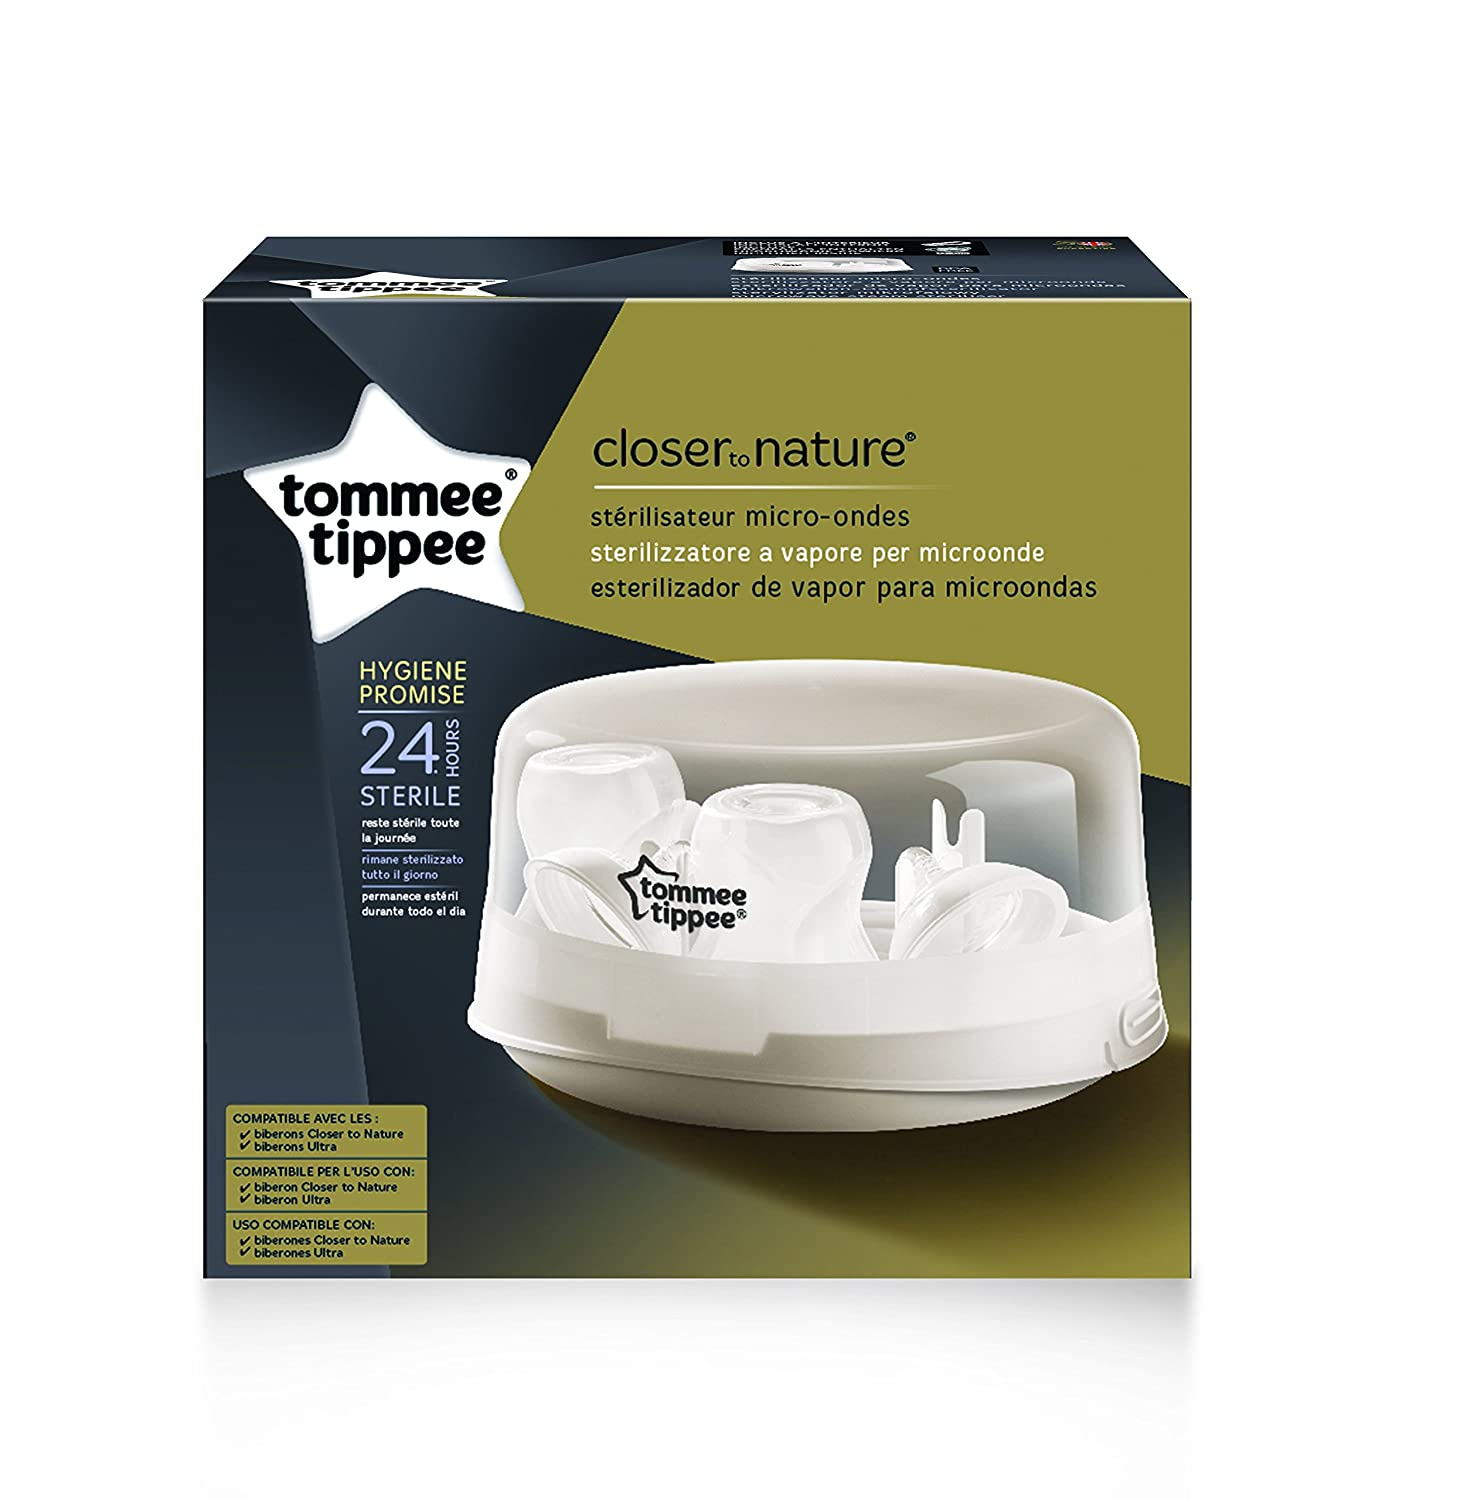 Tommee Tippee Closer to Nature - Esterilizador de vapor para microondas: Amazon.es: Bebé